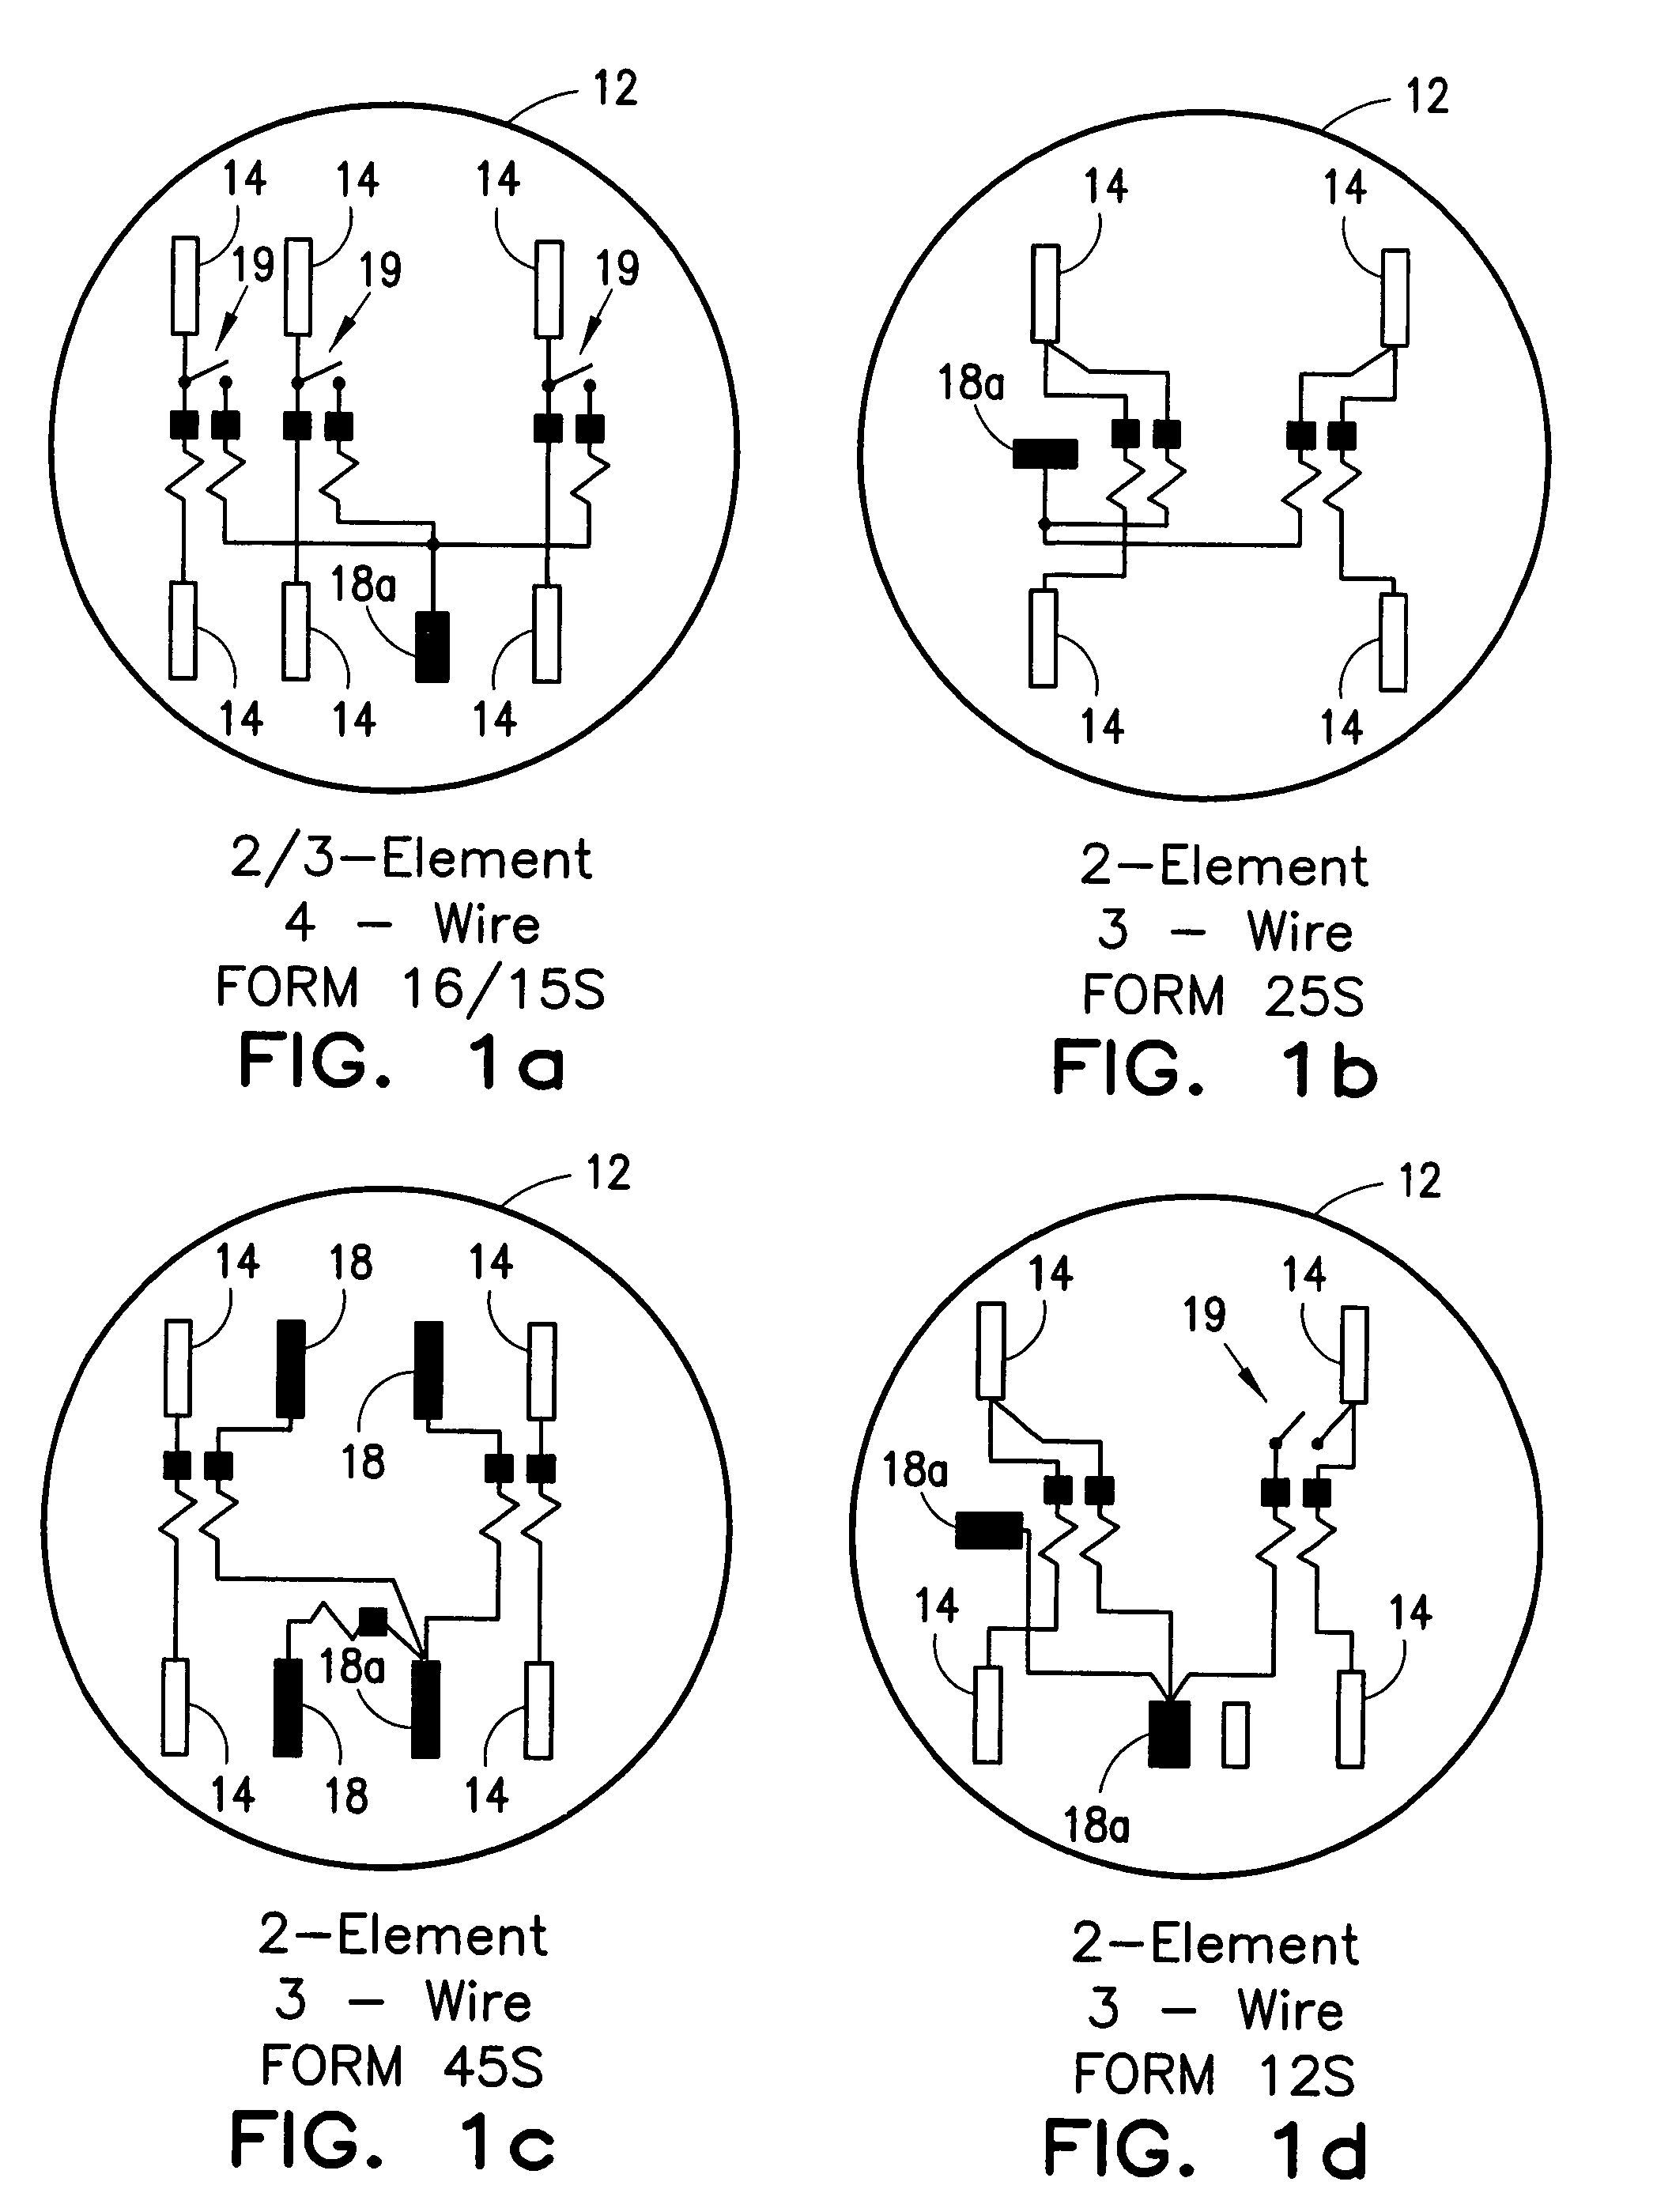 Ct Metering Wiring Diagram Meter Form Diagrams Source Pt Connection As Well Additionally 3s